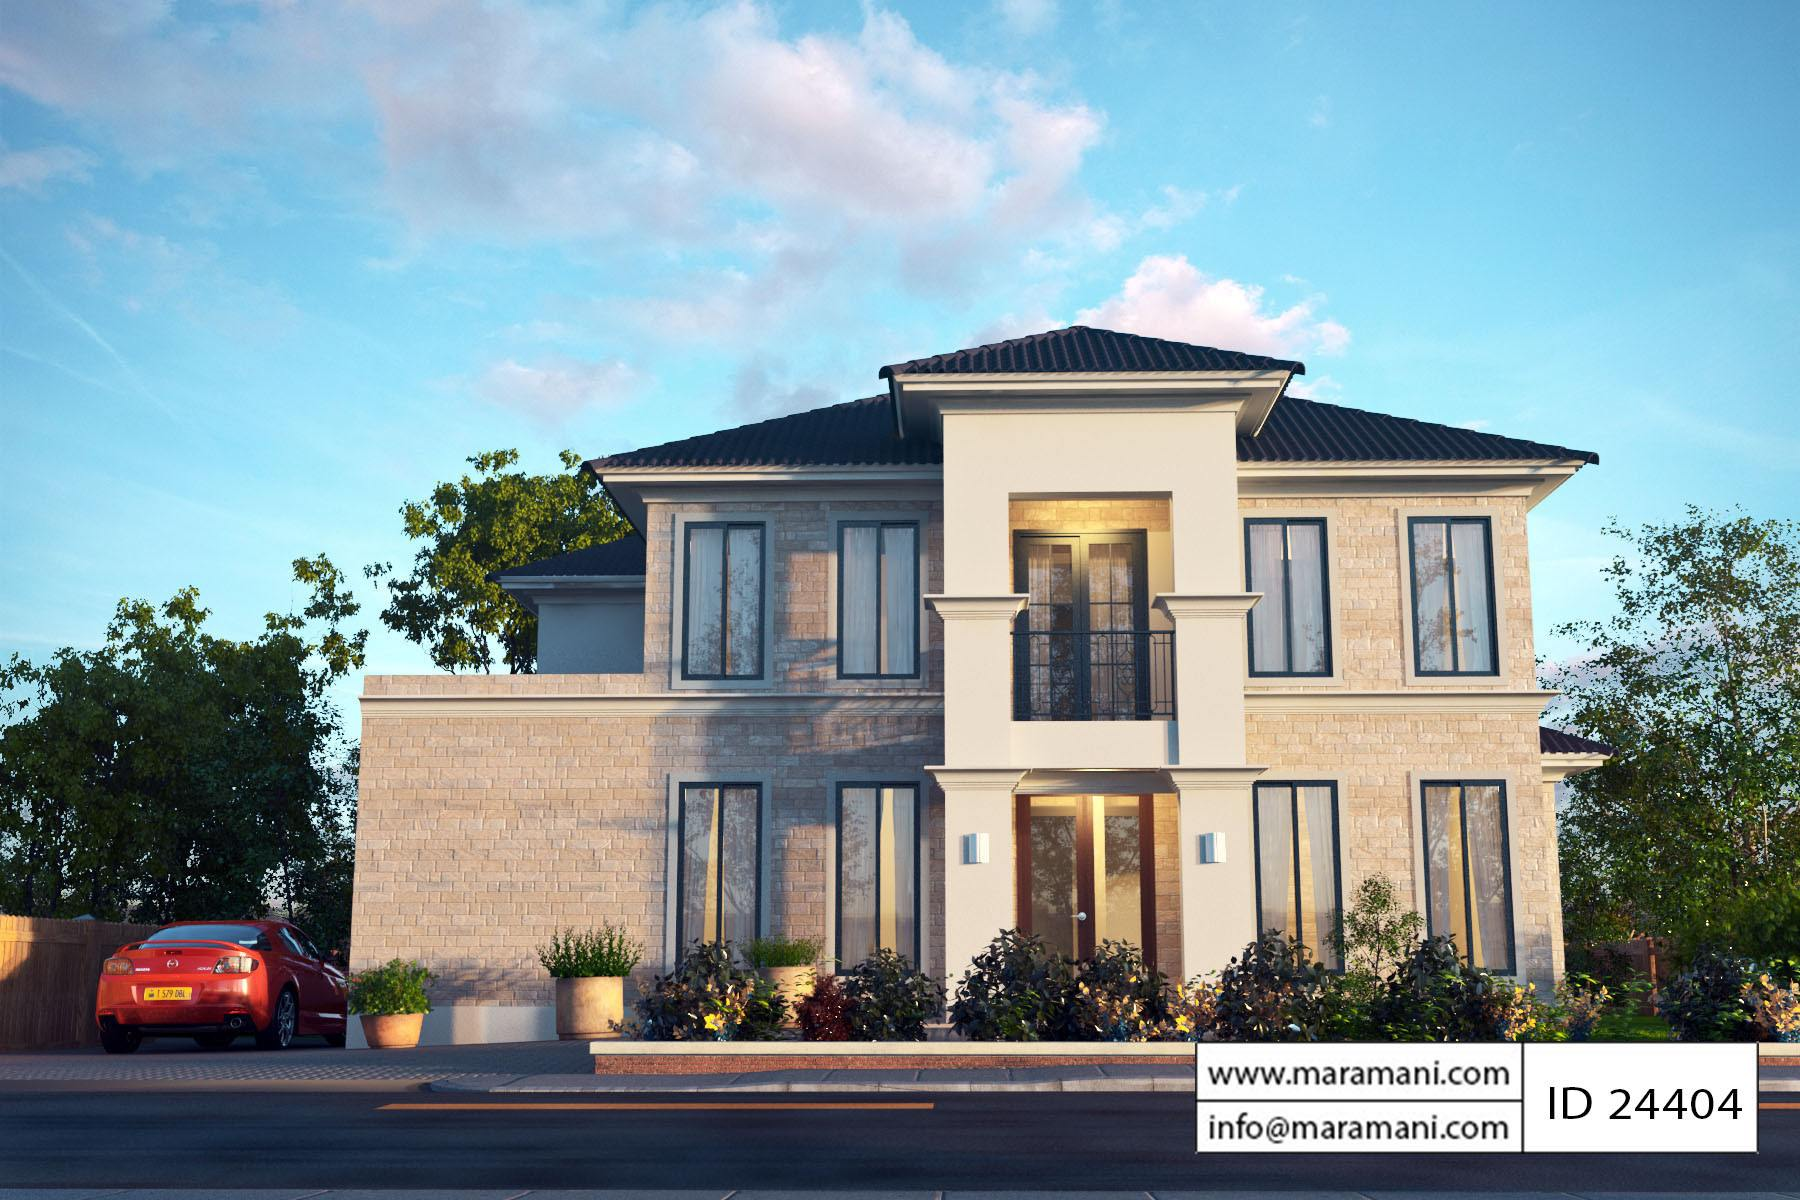 House Plans 4 Bedroom. 4 Bedroom House Plans Designs for Africa by Maramani bedroom house design and plans